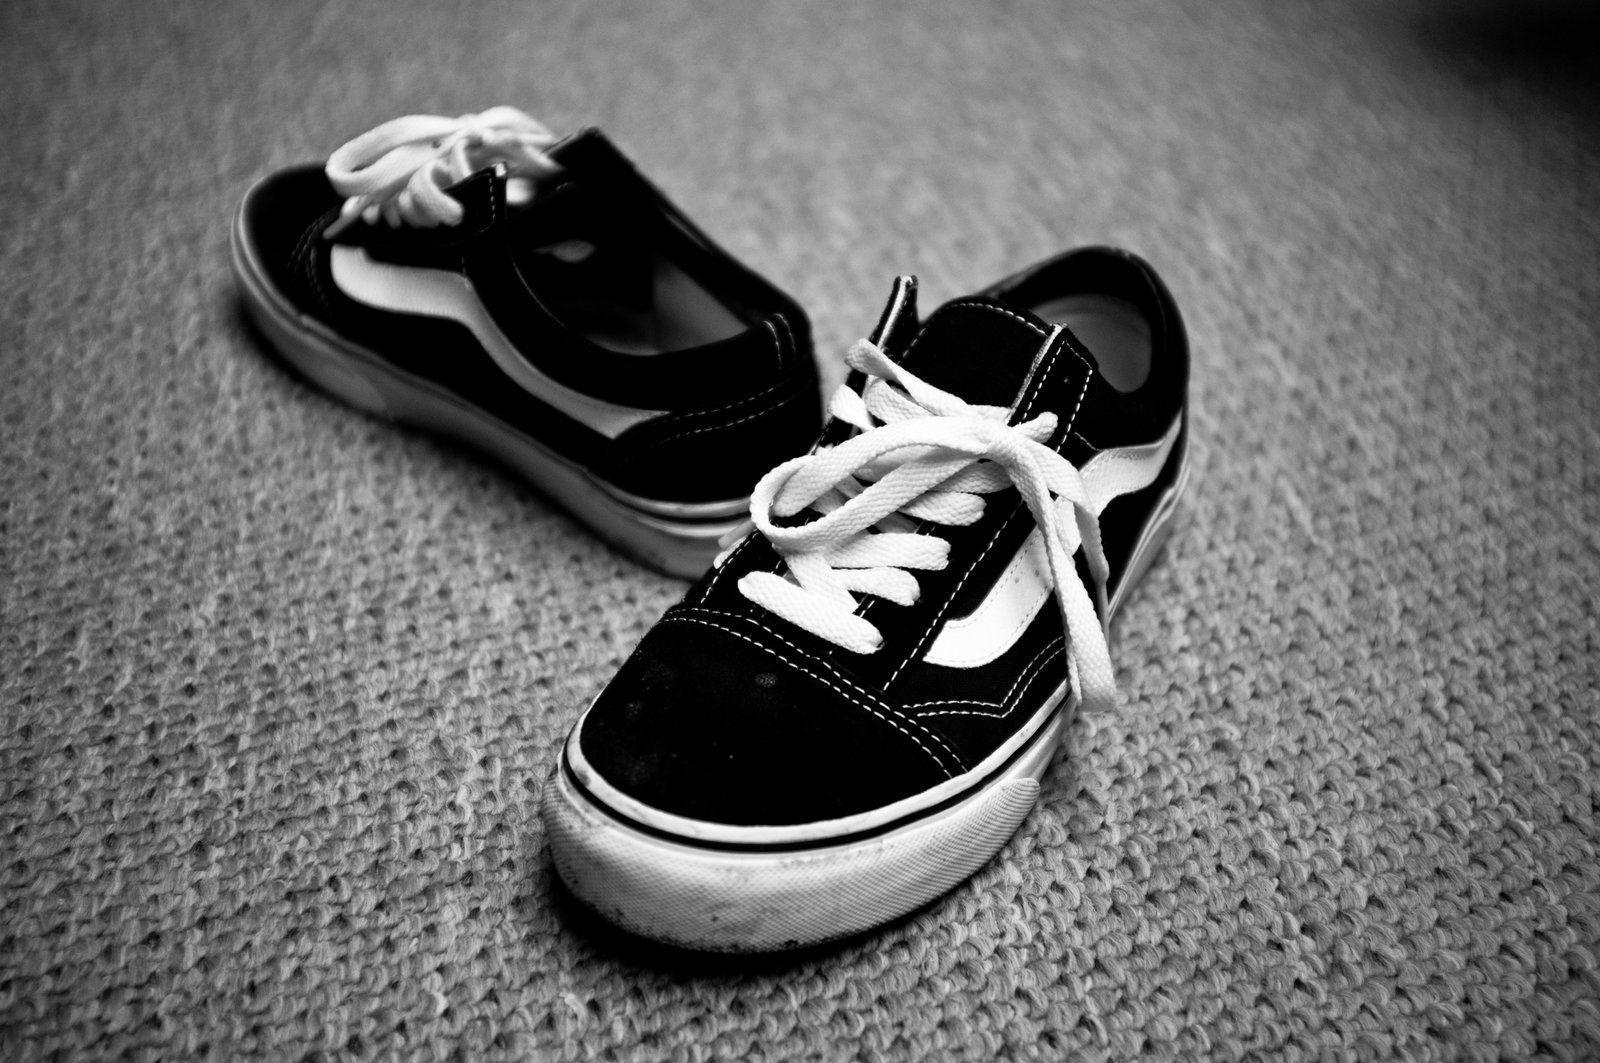 vans tumblr iphone wallpapers